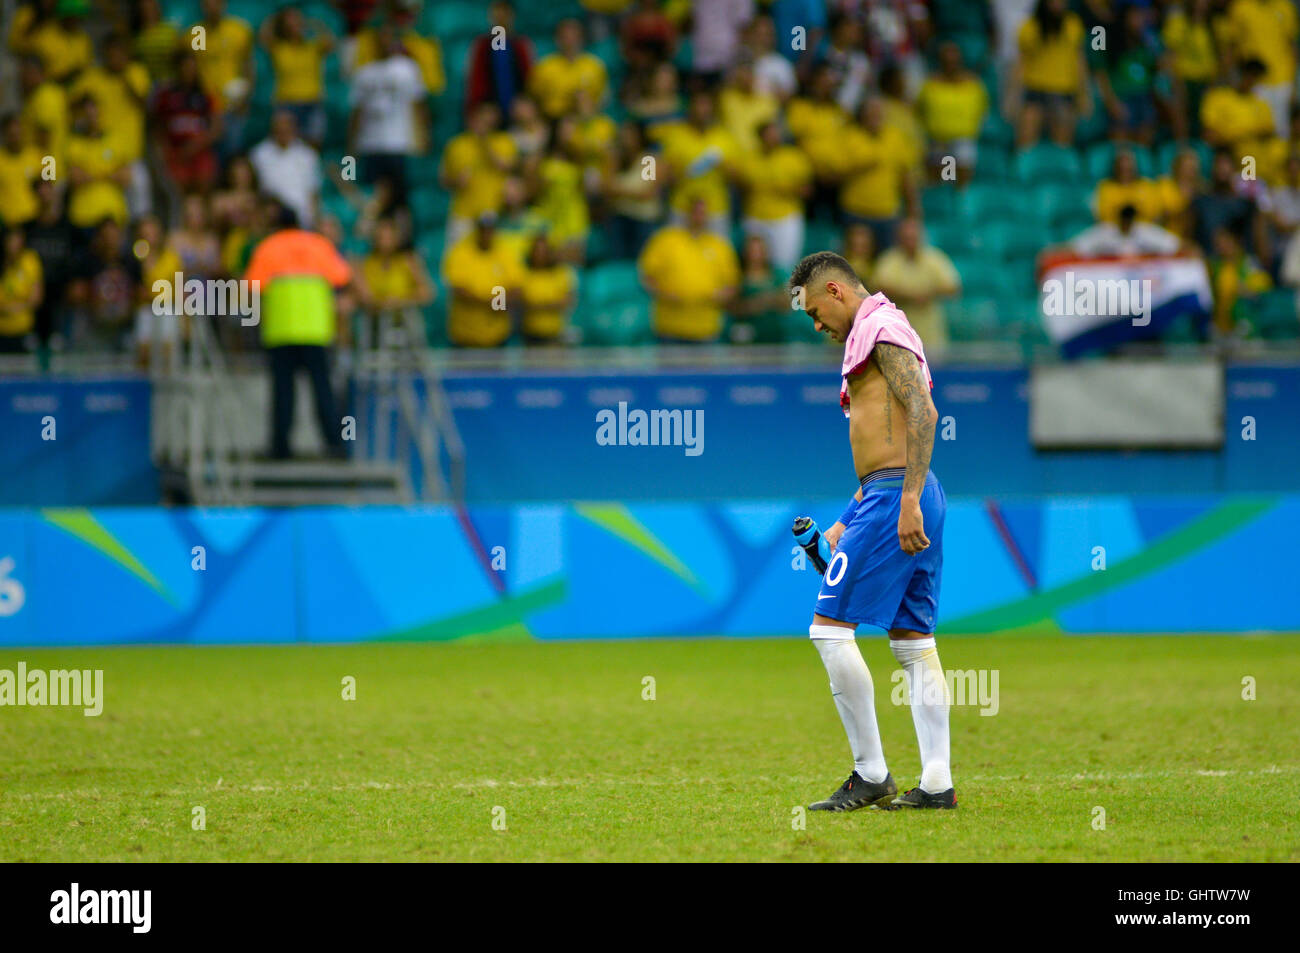 Salvador, Brazil. 10th August, 2016. OLYMPICS 2016 FOOTBALL SALVADOR - Neymar leaves the field after the match between Stock Photo